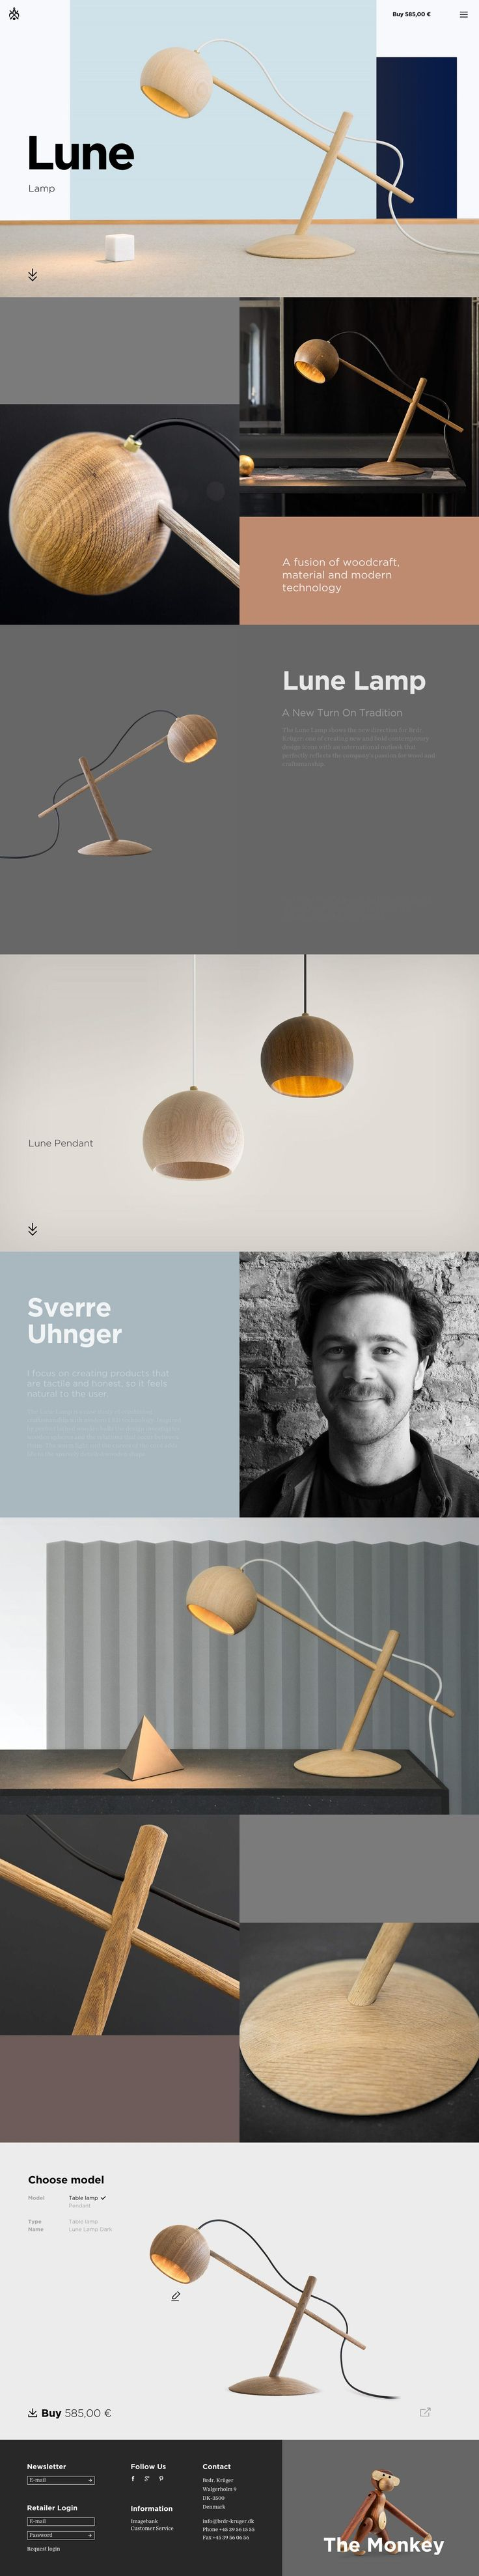 Lune Lamp. What could be better with this woodcrafted lamp of art? #webdesign…